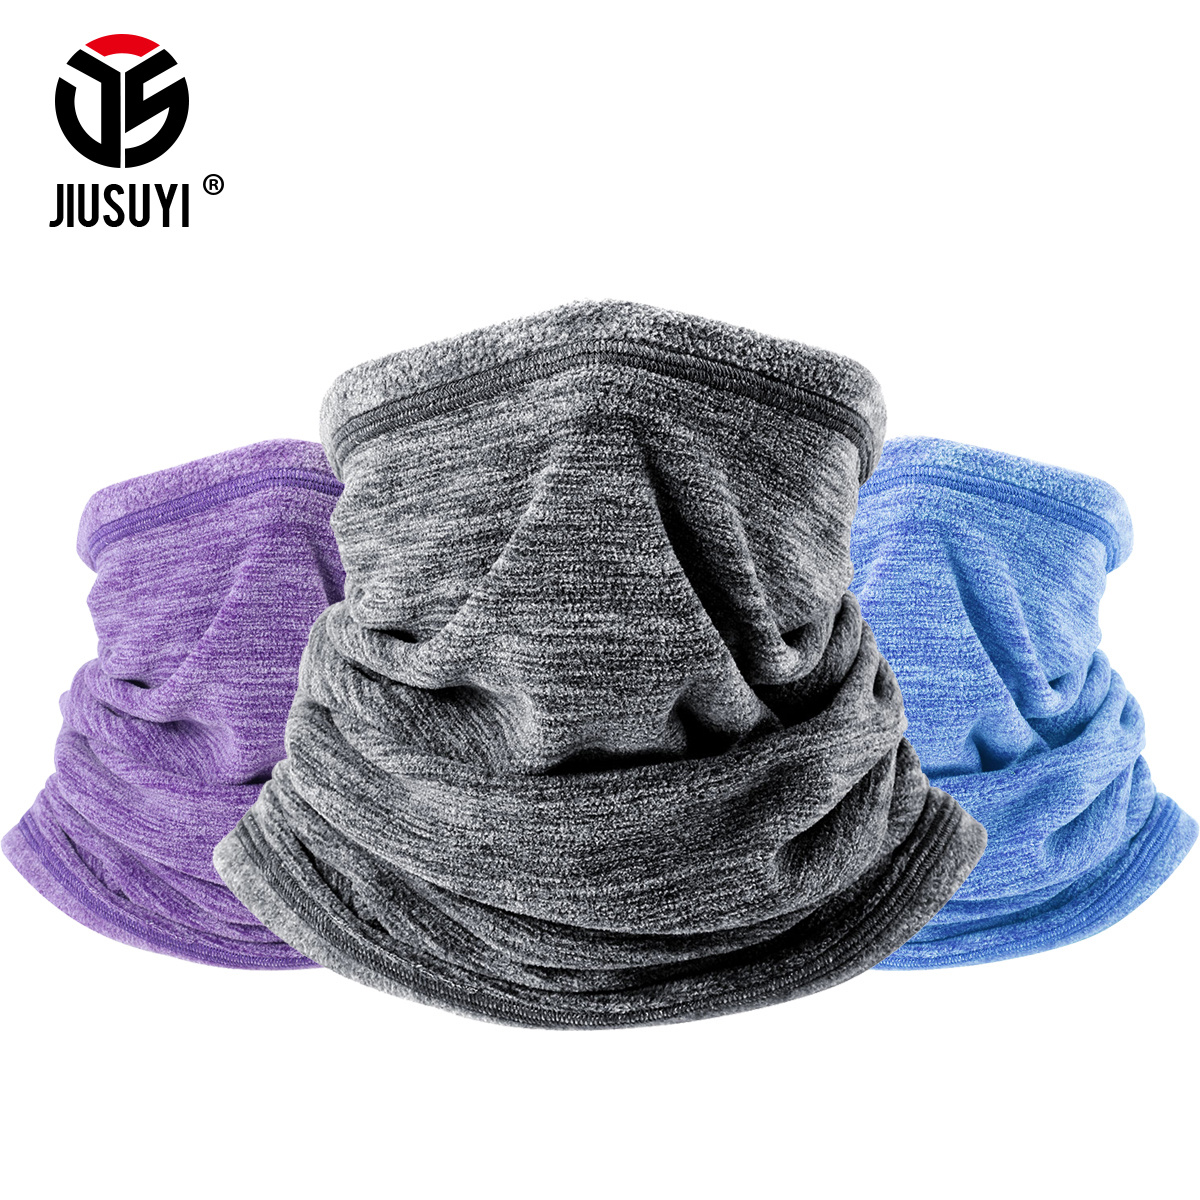 Bandana Men Scarves Snowboard Polar-Fleece Thermal-Neck Warm Winter Women Gaiter-Tube title=